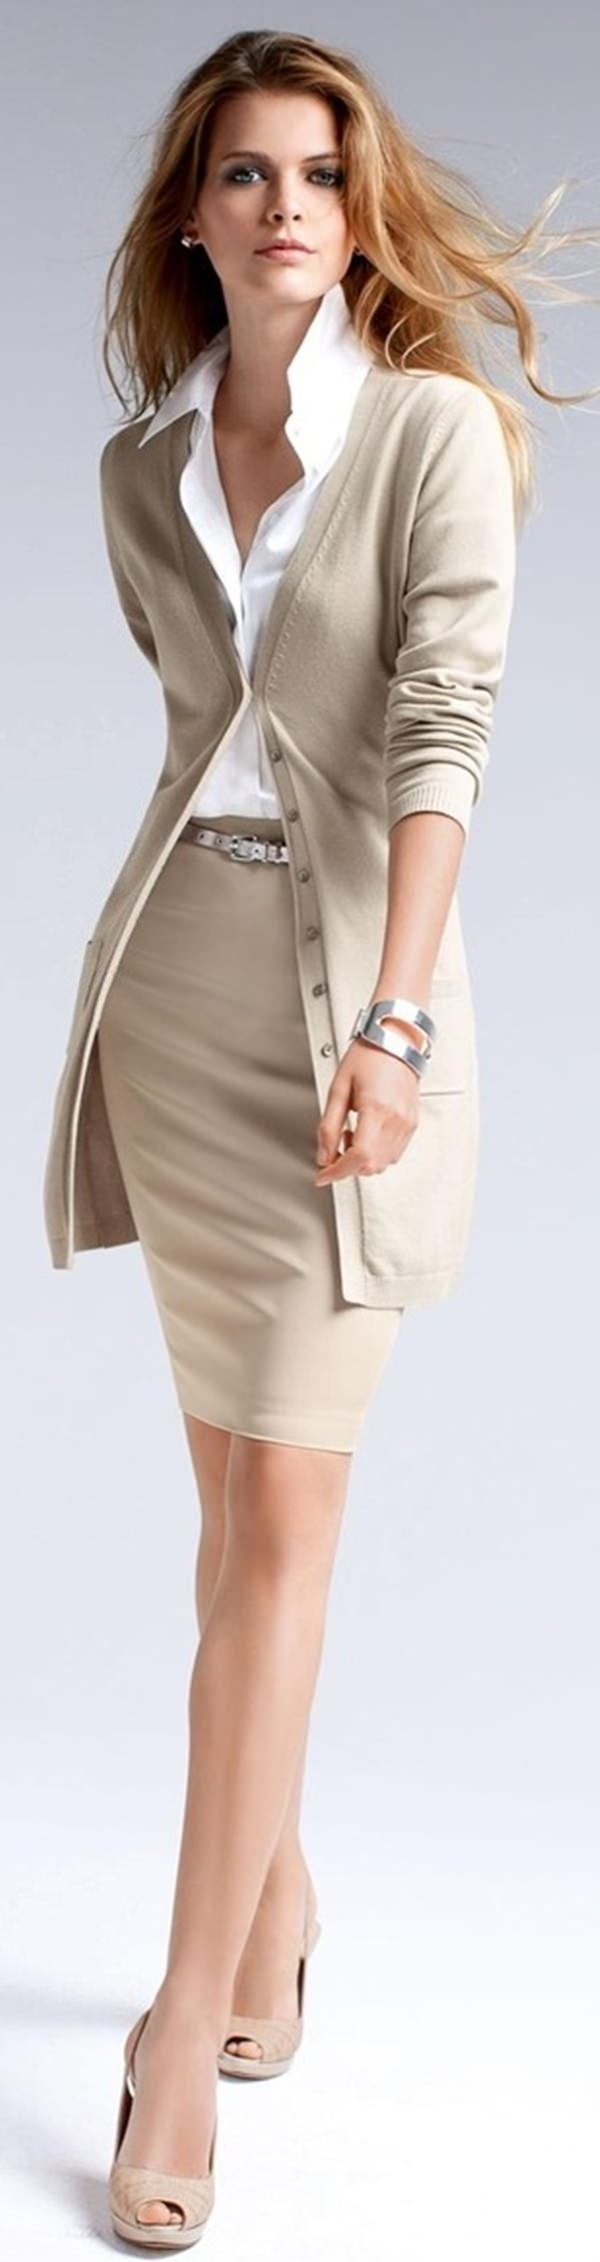 pencil skirt outfits 33